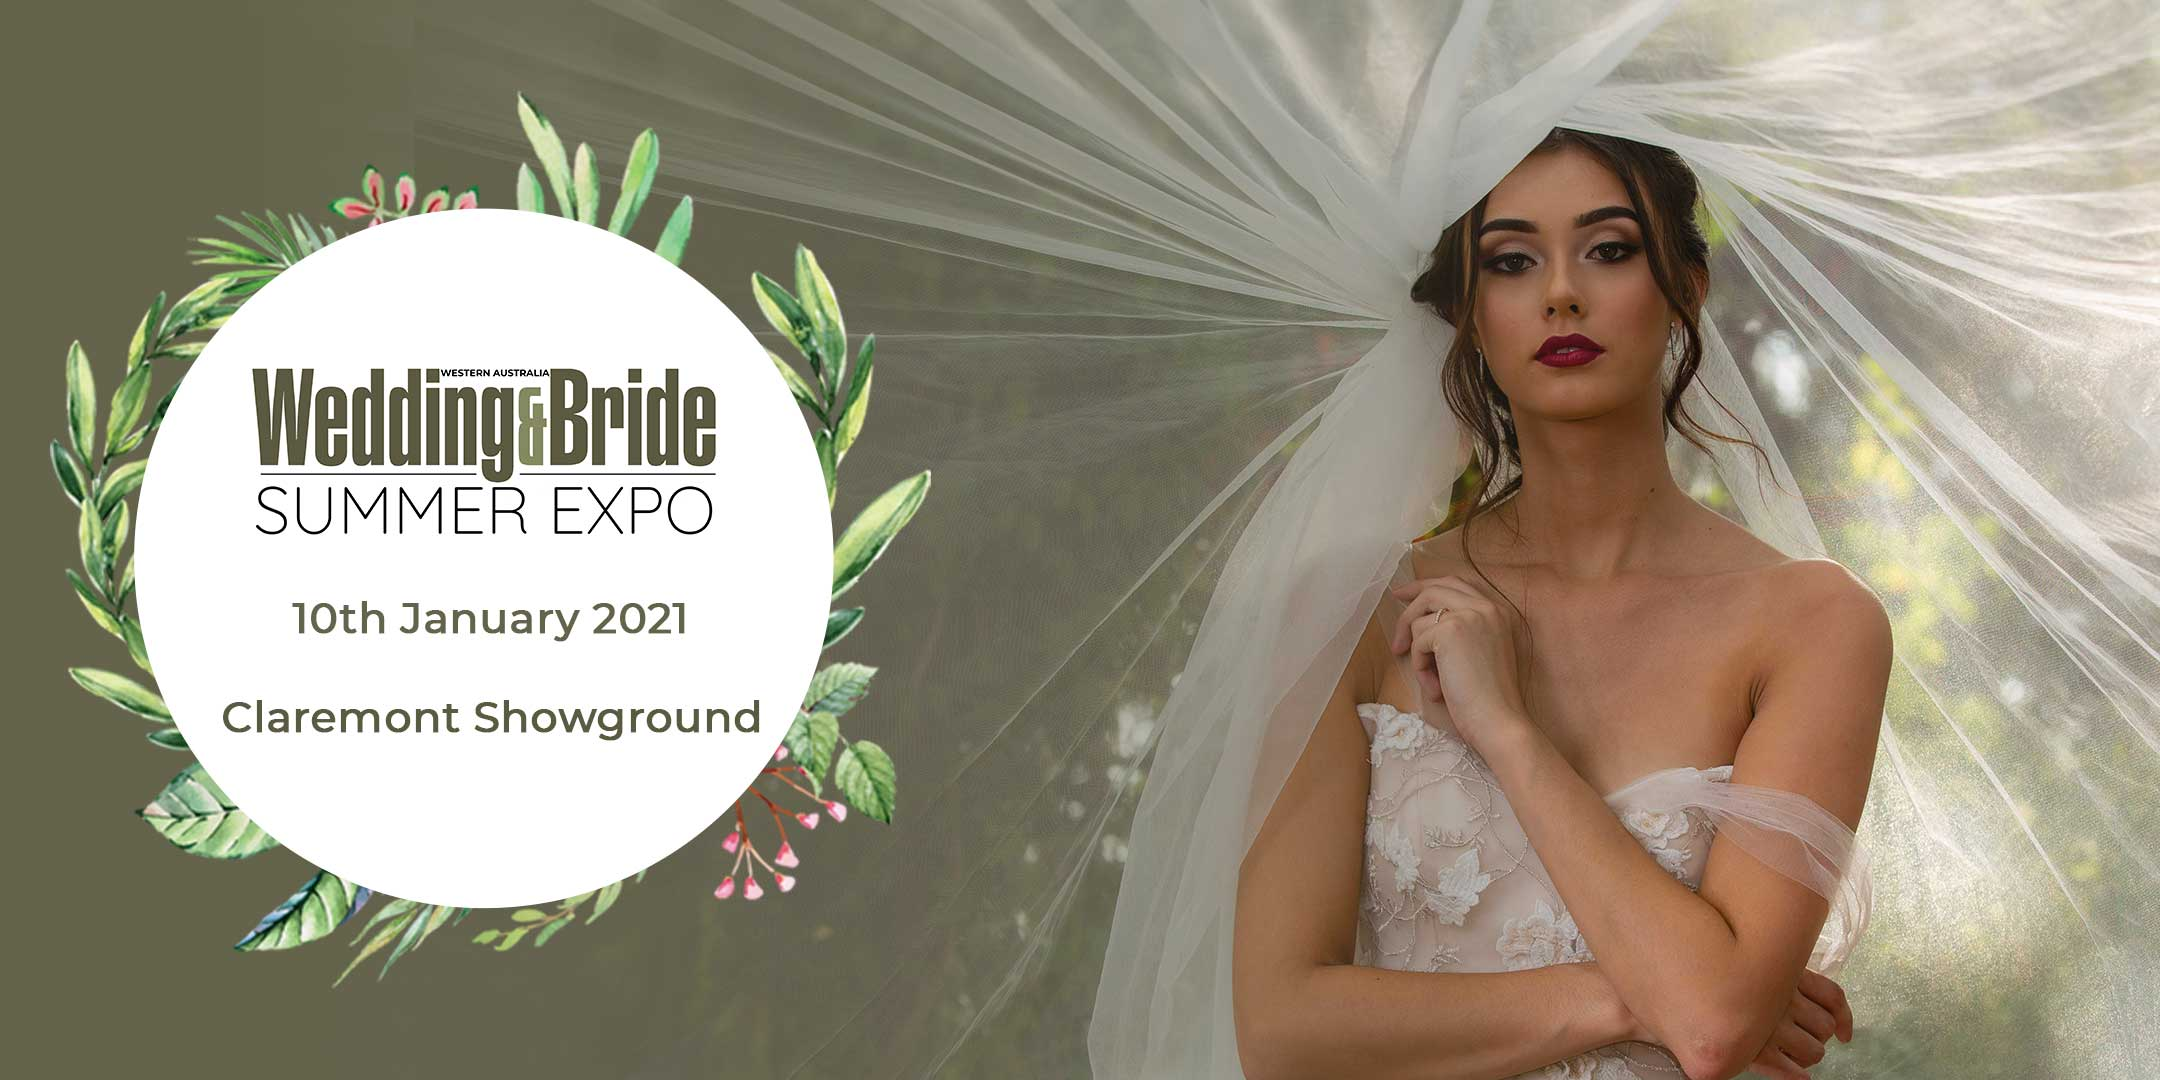 2021 Western Australia Wedding & Bride Perth Bridal Expo